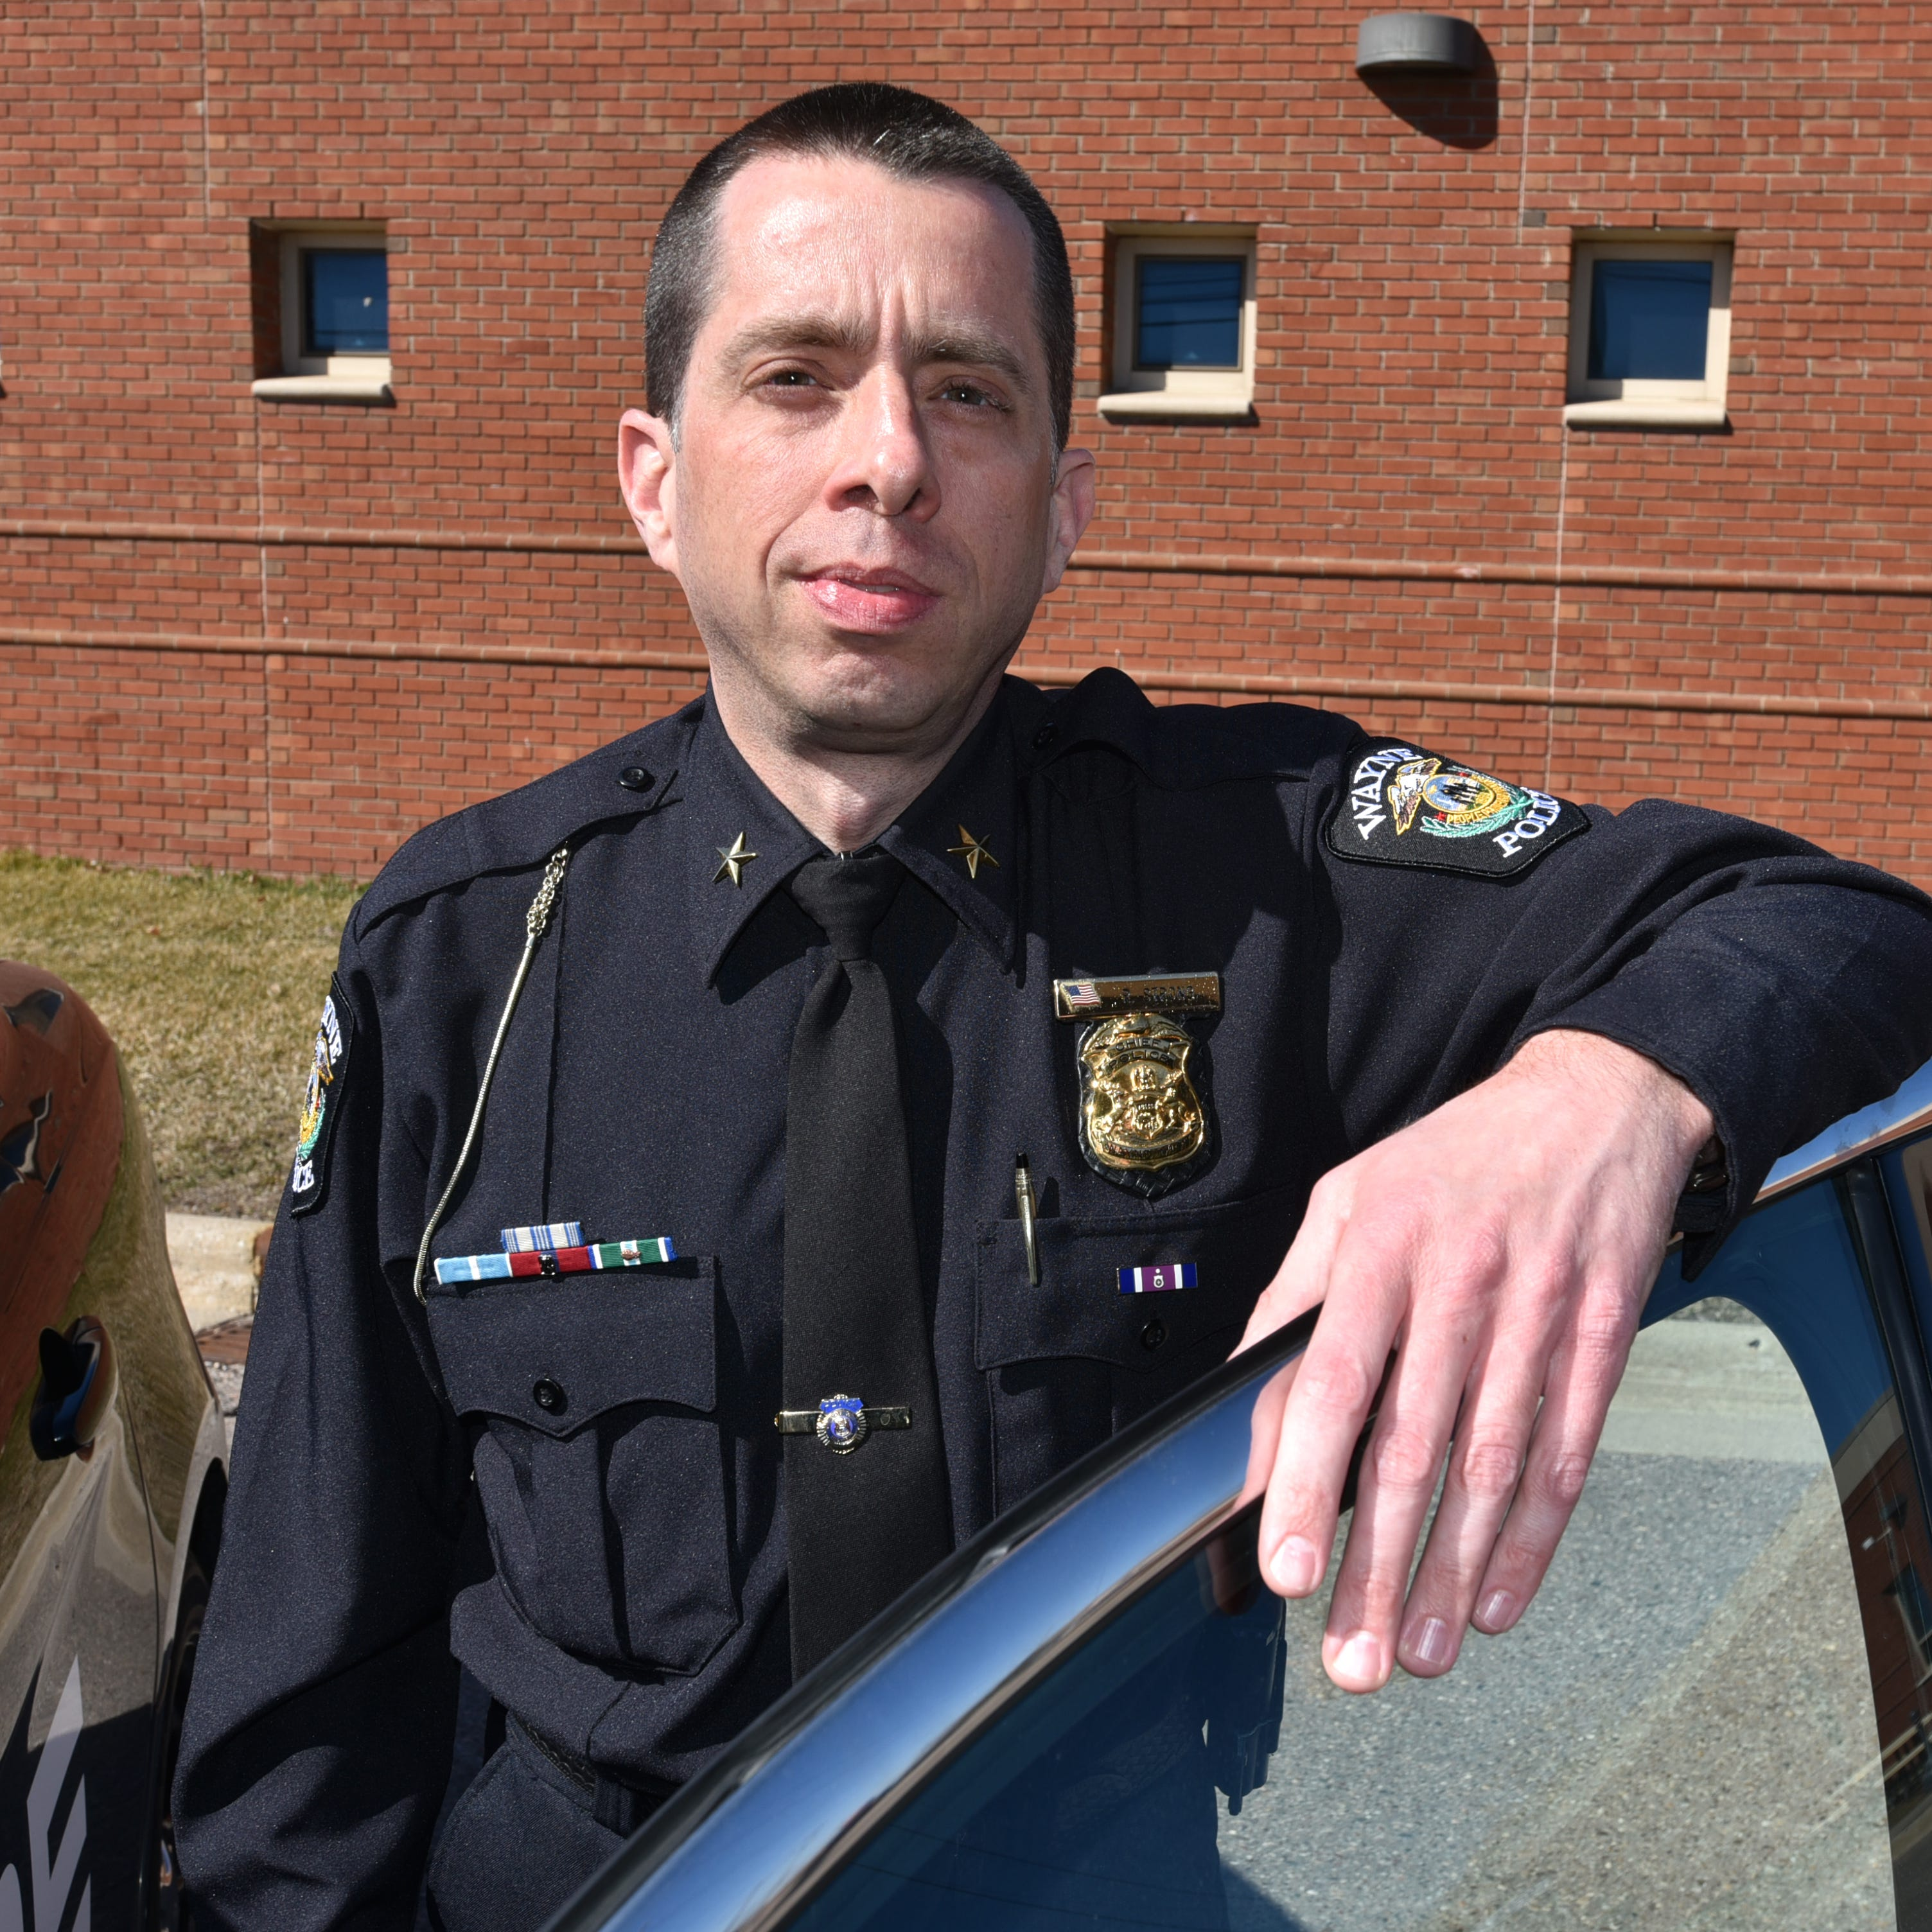 Uncle's prophecy happens: Wayne police officer becomes chief